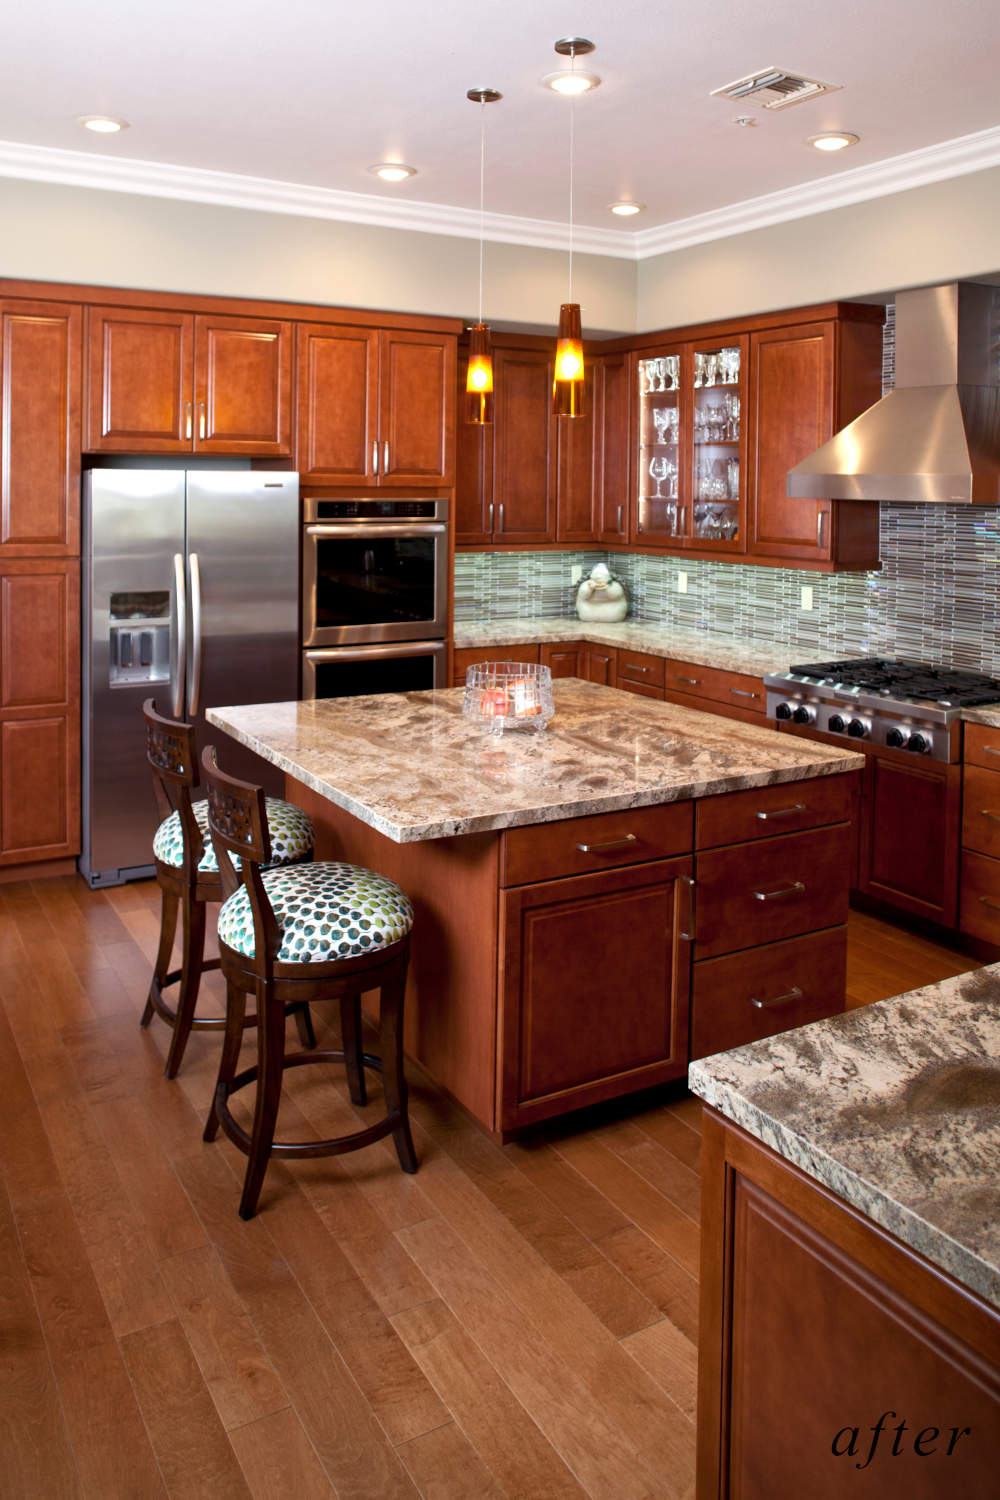 After remodel image: New kitchen with cherry colored cabinets, marble counters, dark wood floor.